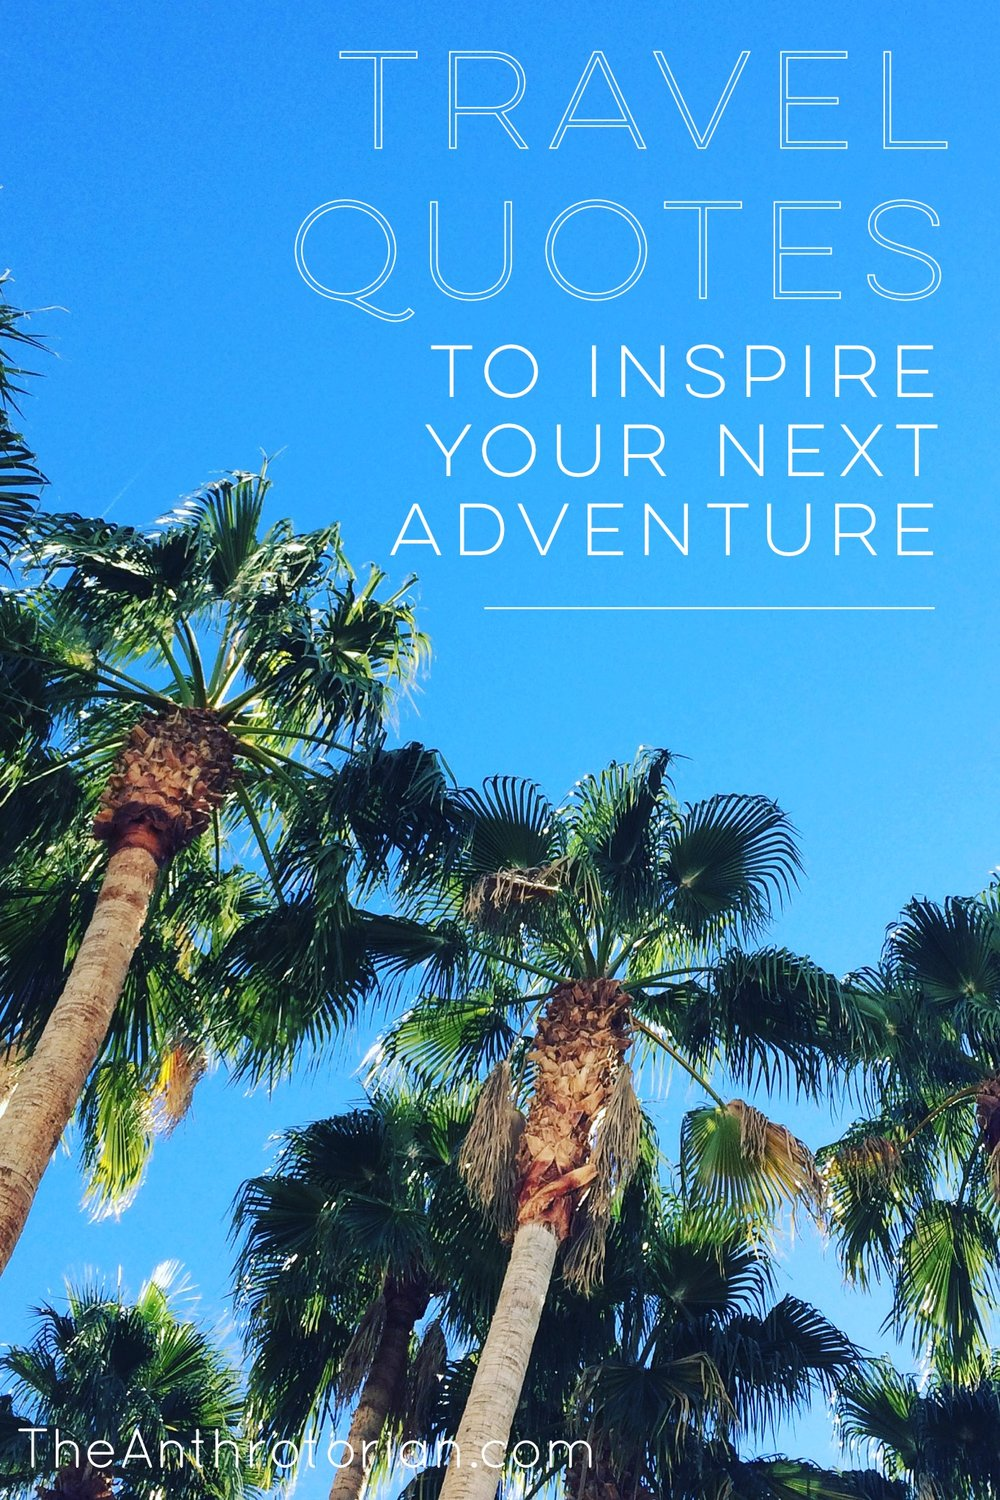 Travel Quotes to Inspire Your Next Adventure